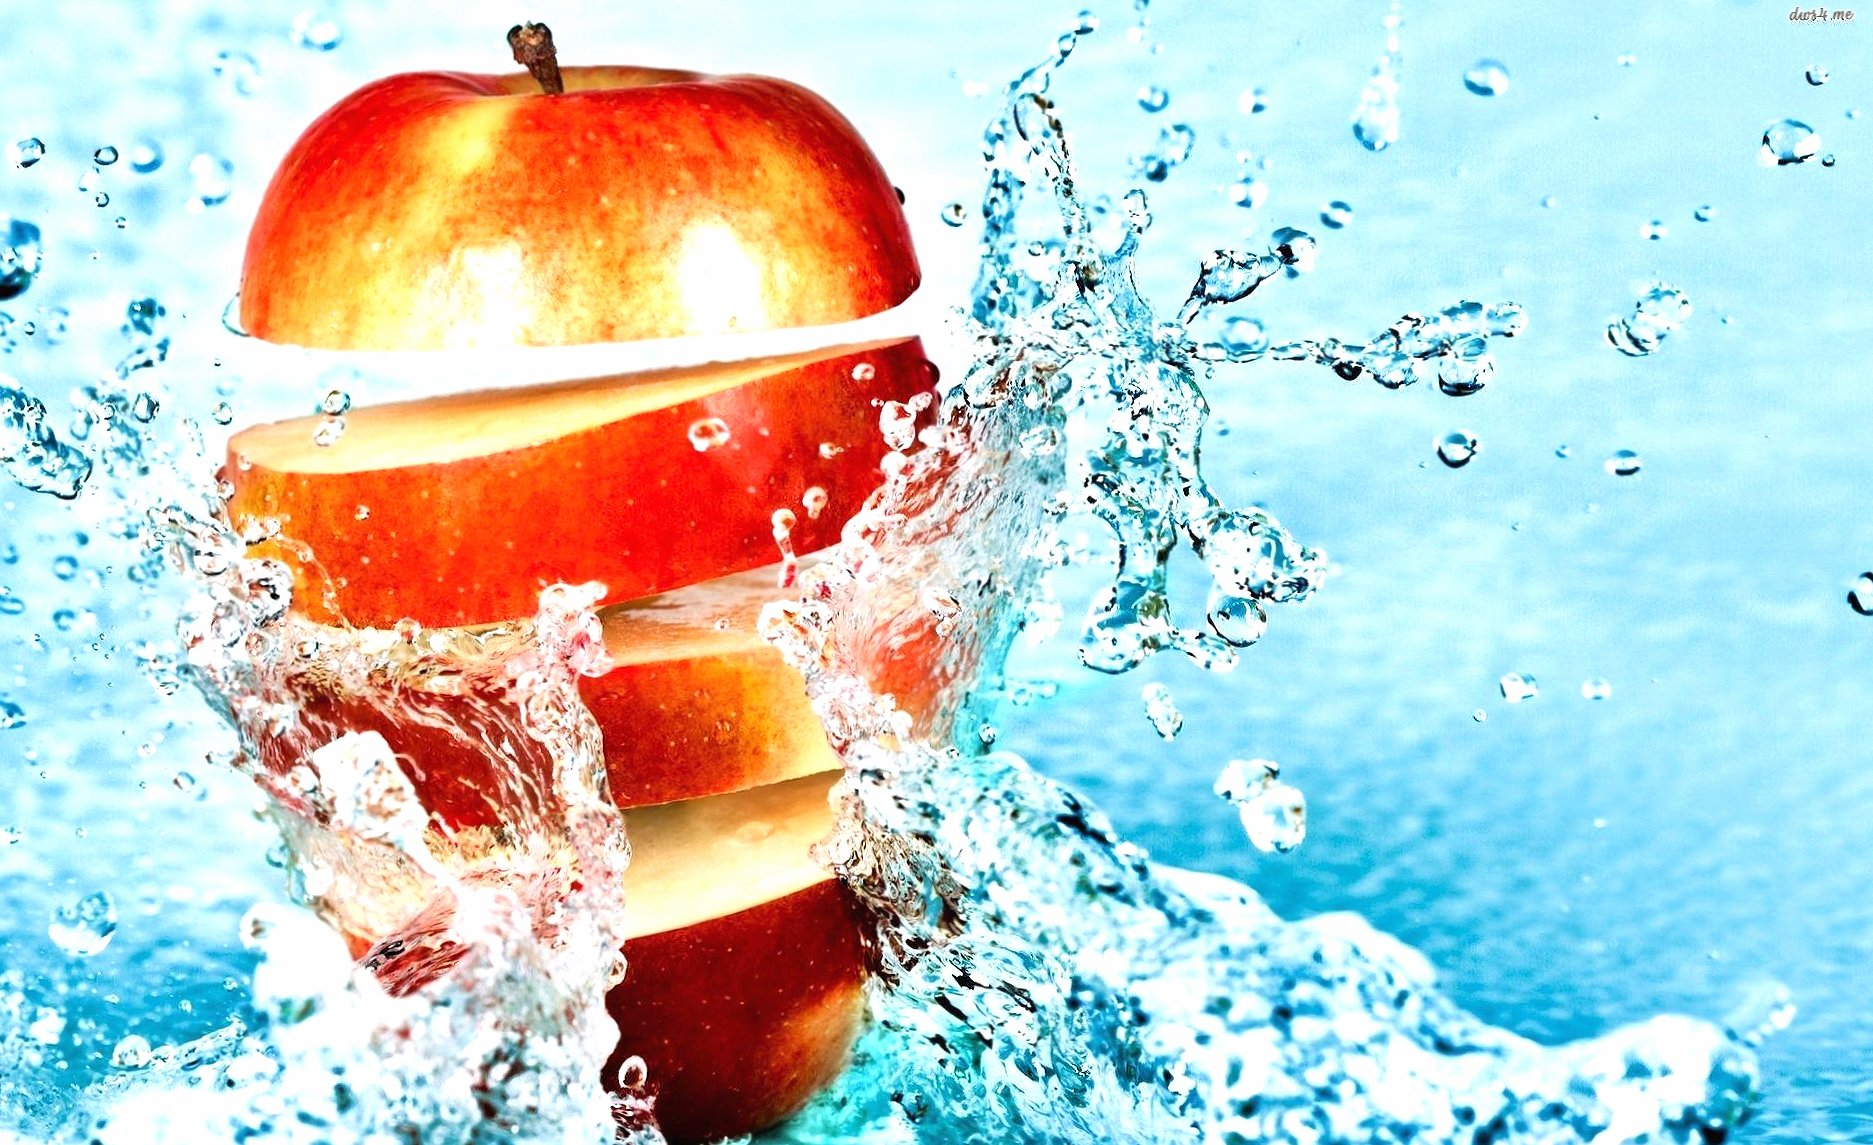 Sliced apple in water wallpapers HD quality